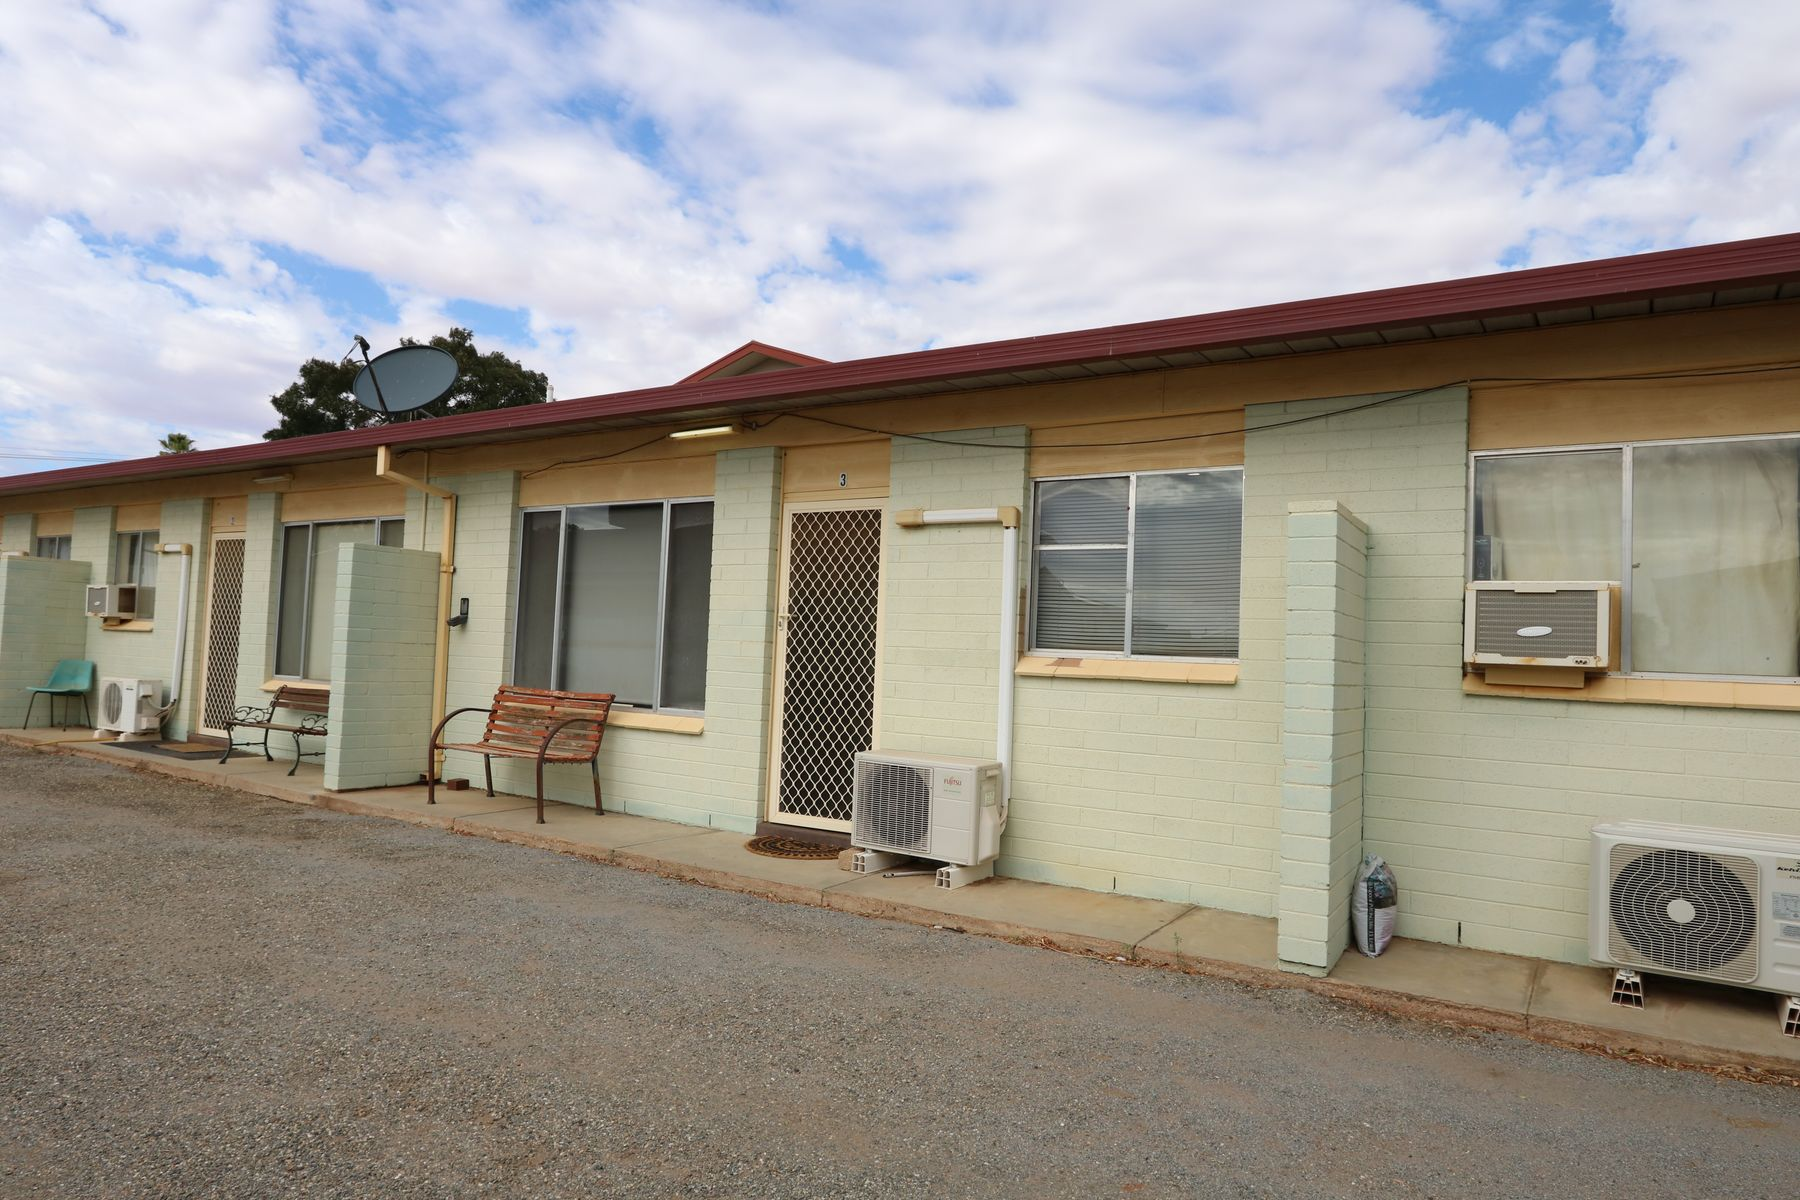 3/506 Cummins Lane, Broken Hill, NSW 2880